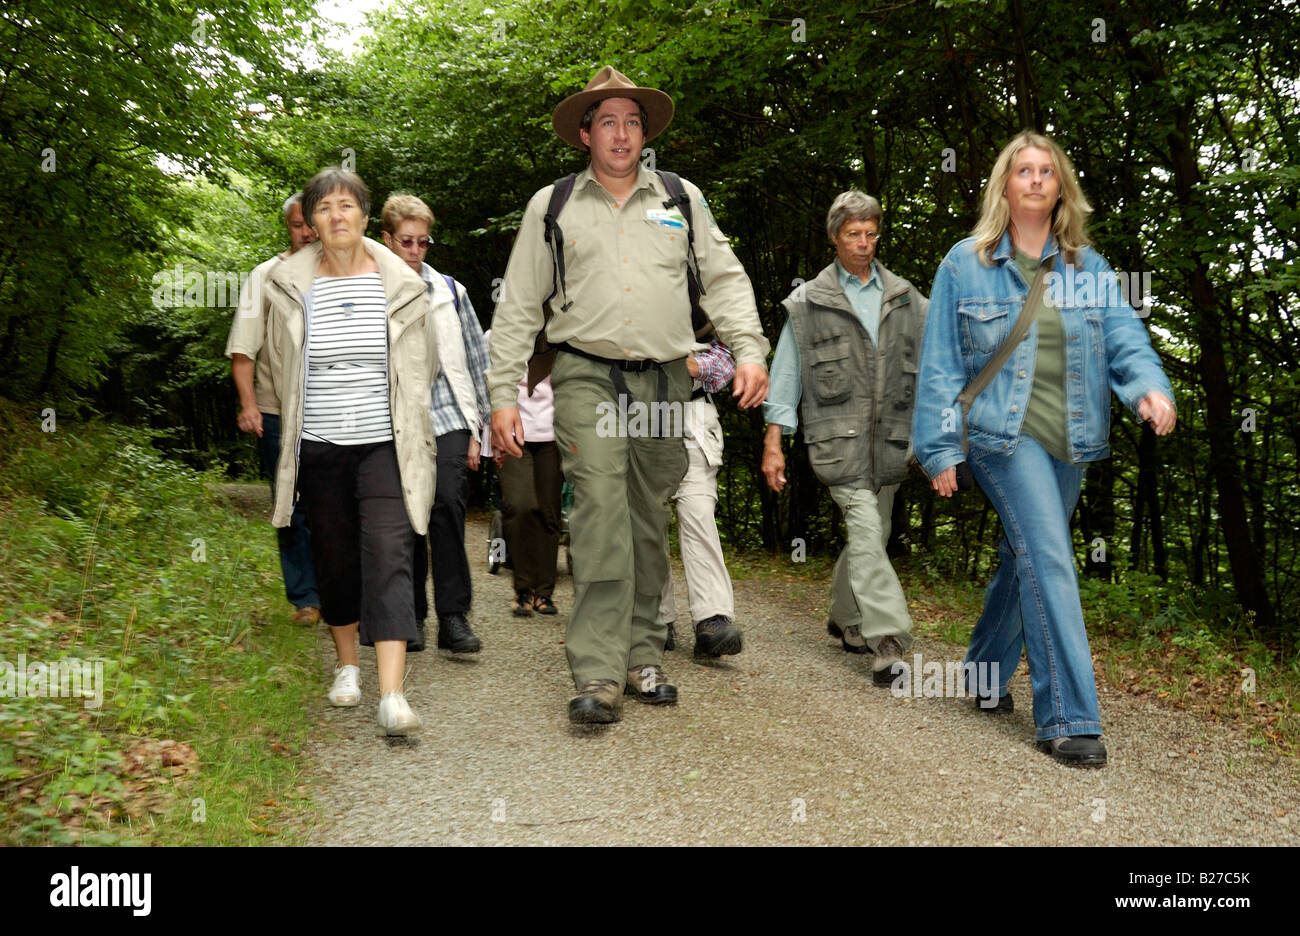 ranger with hiking group on a guided trip across National Park nature reserve Eifel, North Rhine Westphalia, Germany - Stock Image